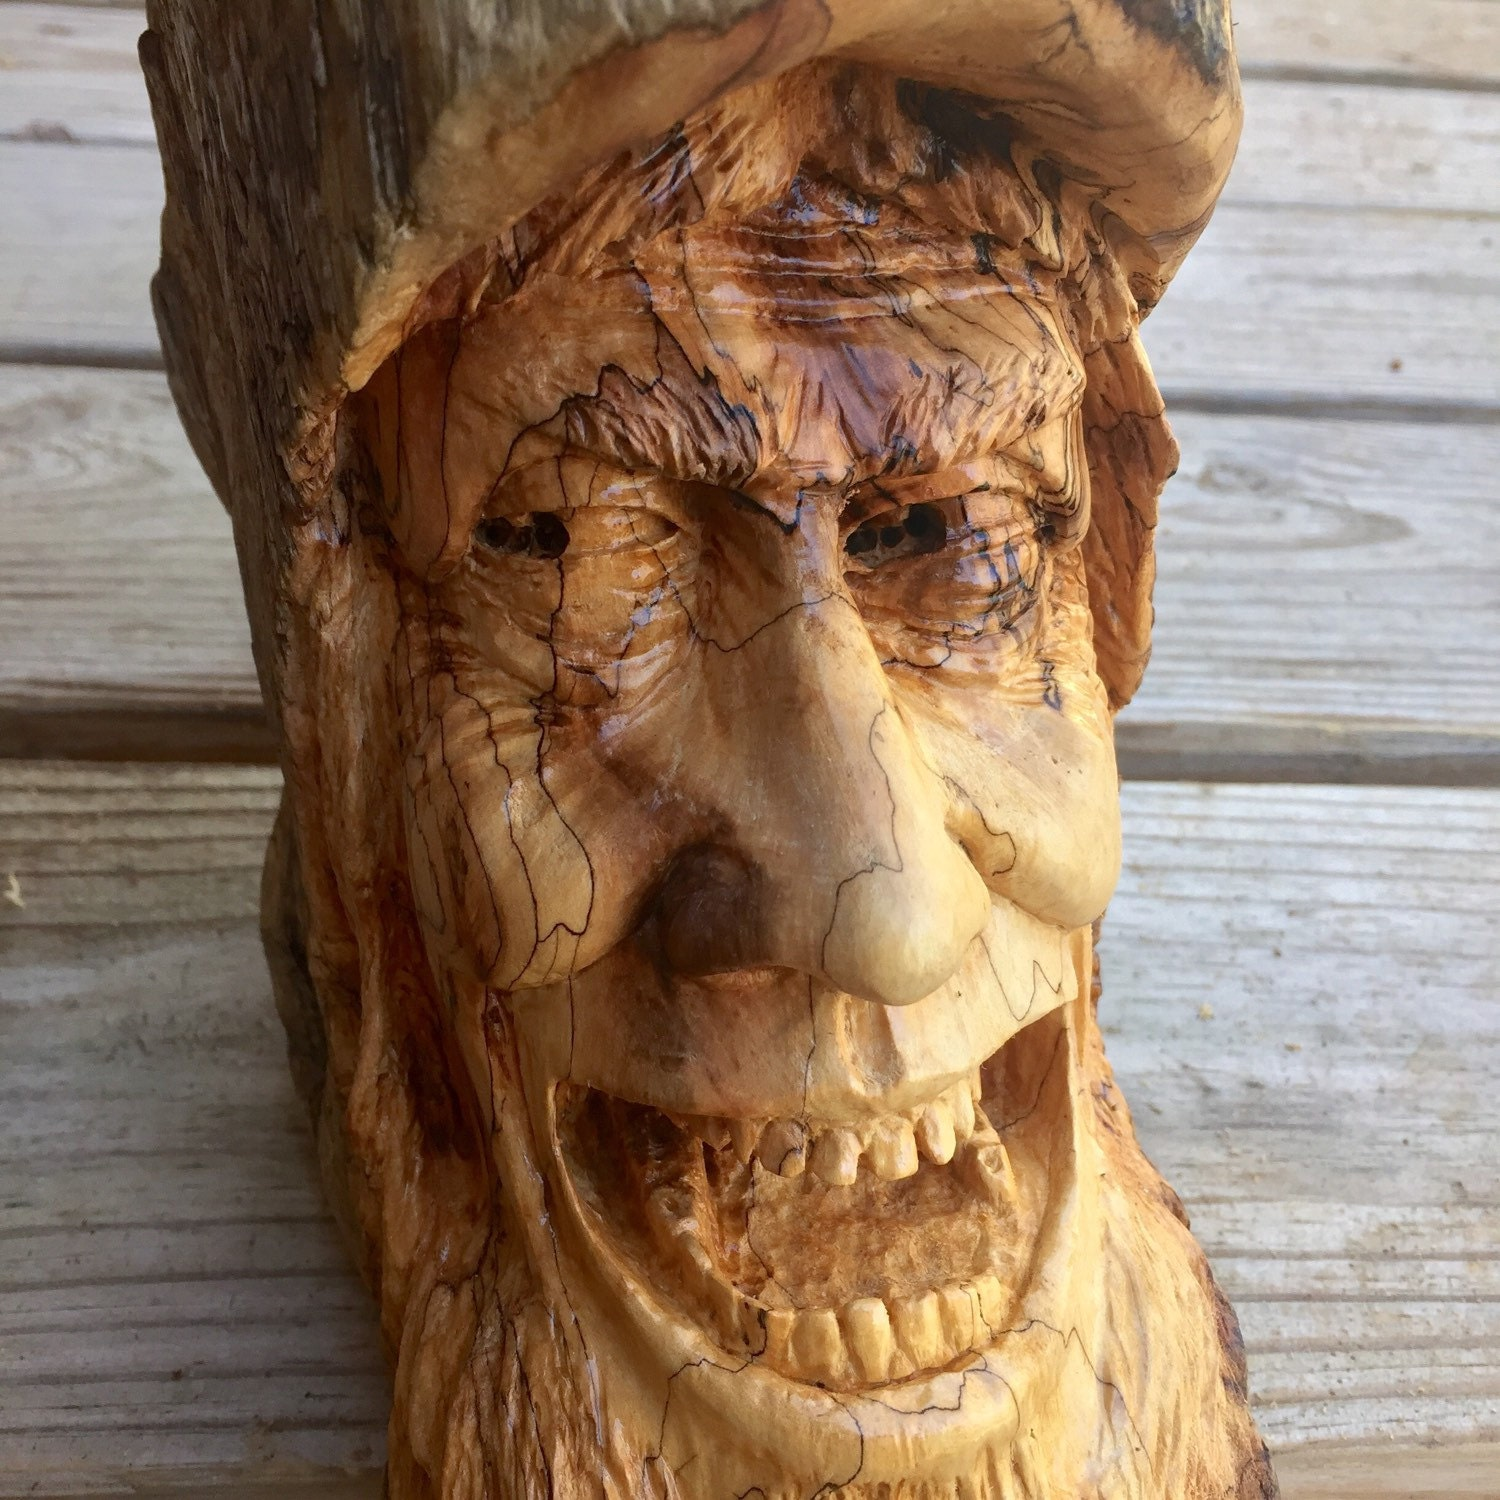 Wood spirit carving hand carved sculpture by josh